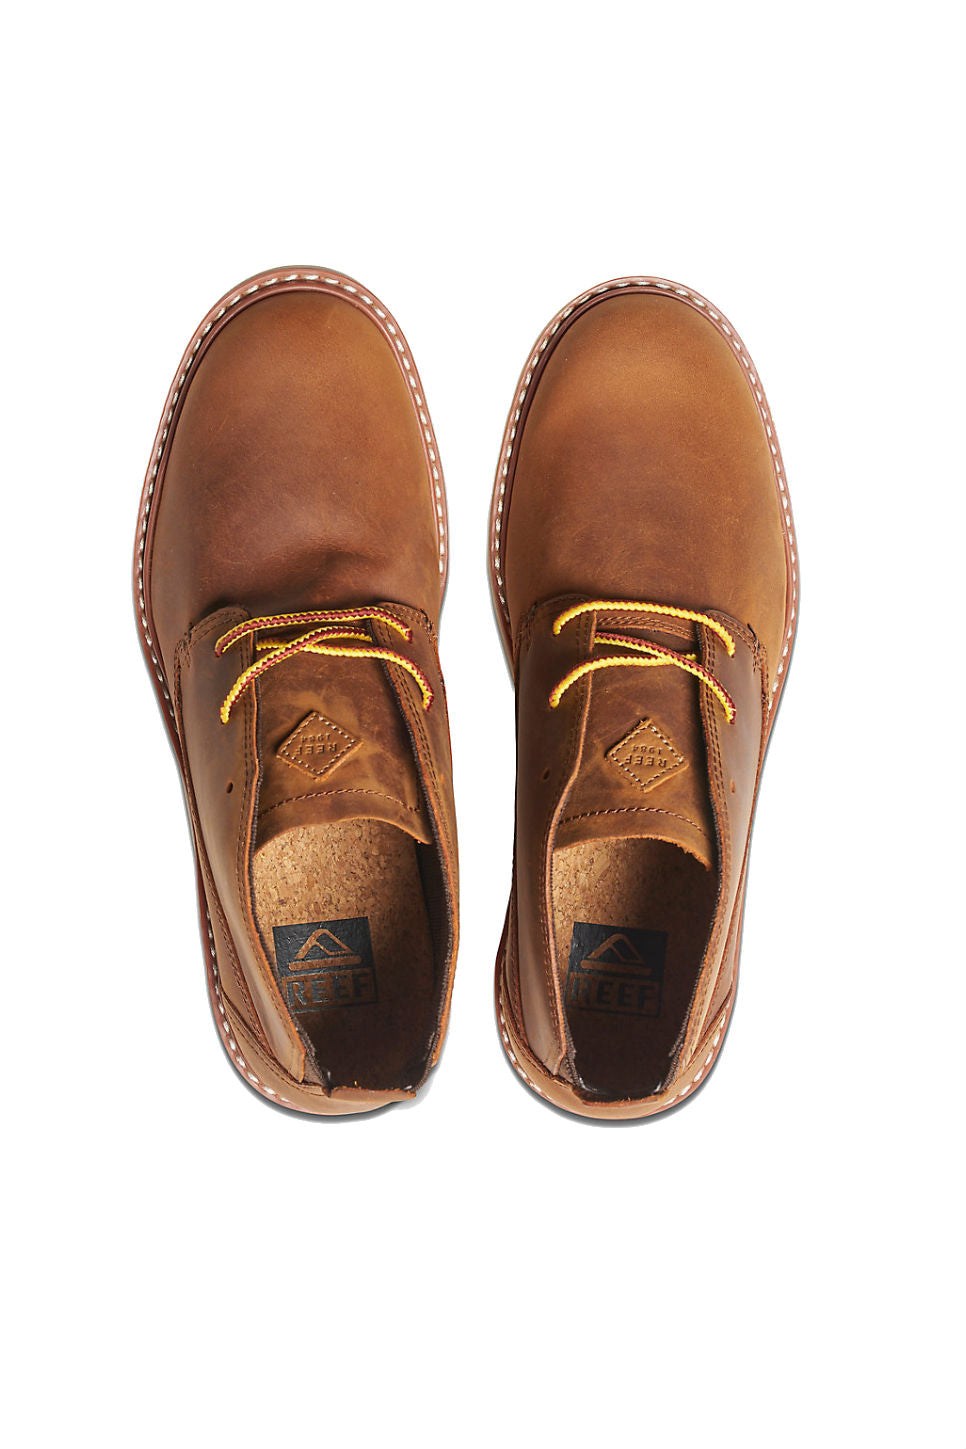 VOYAGE BOOT LE - BROWN